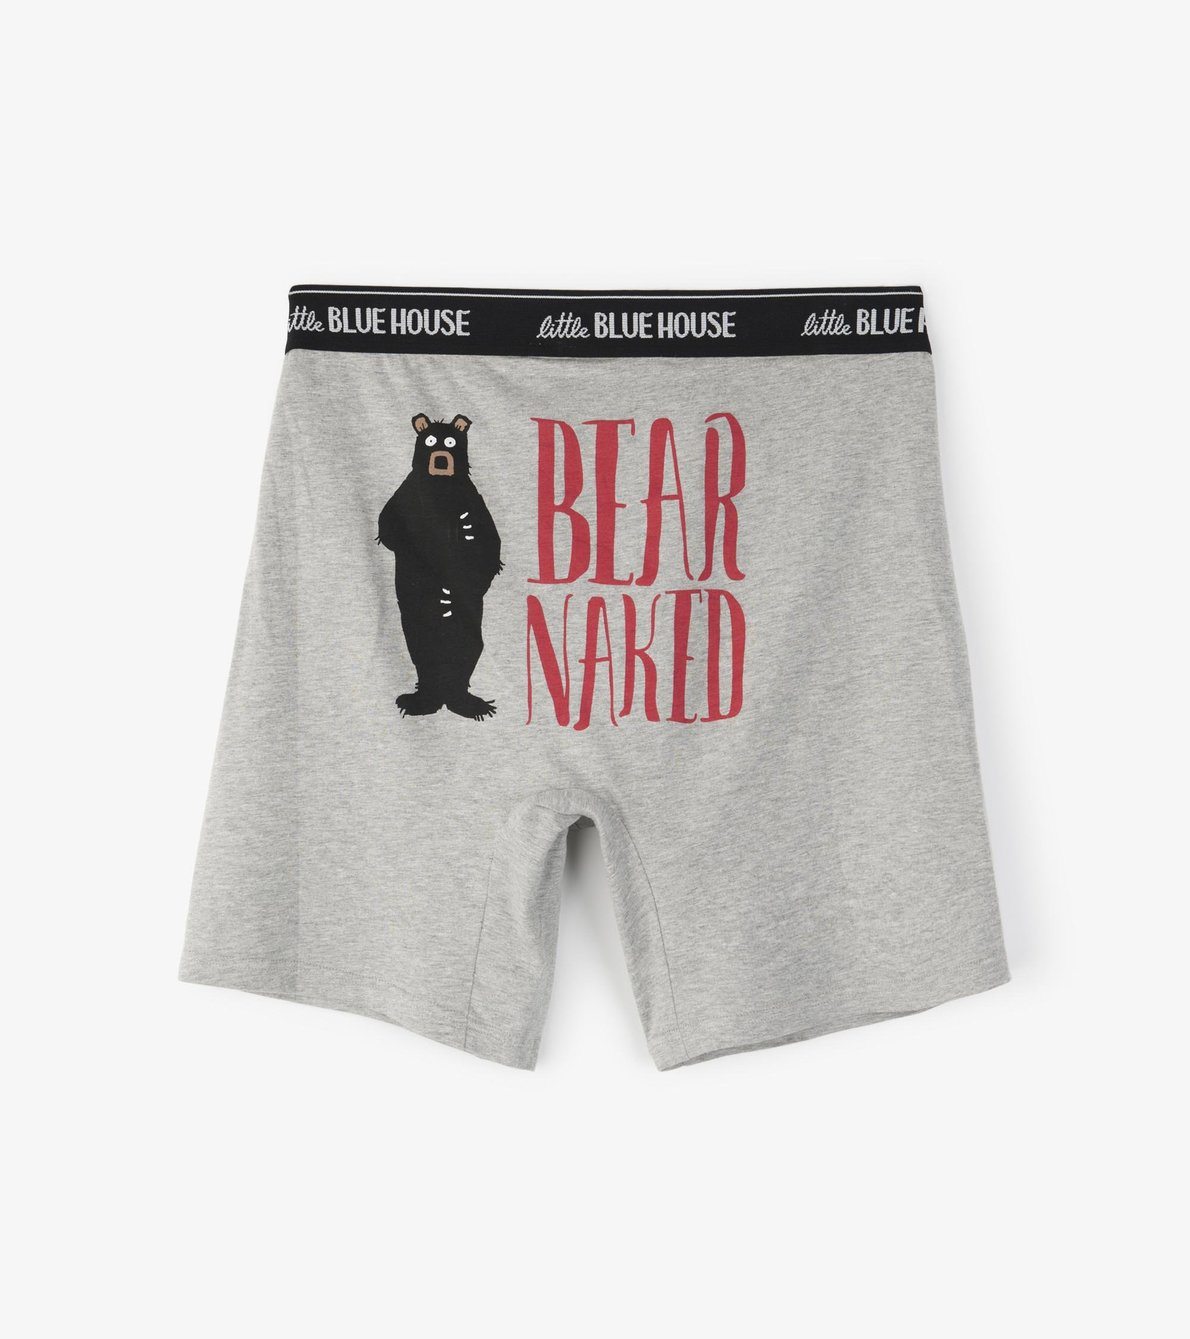 View larger image of Bear Naked Men's Boxer Briefs